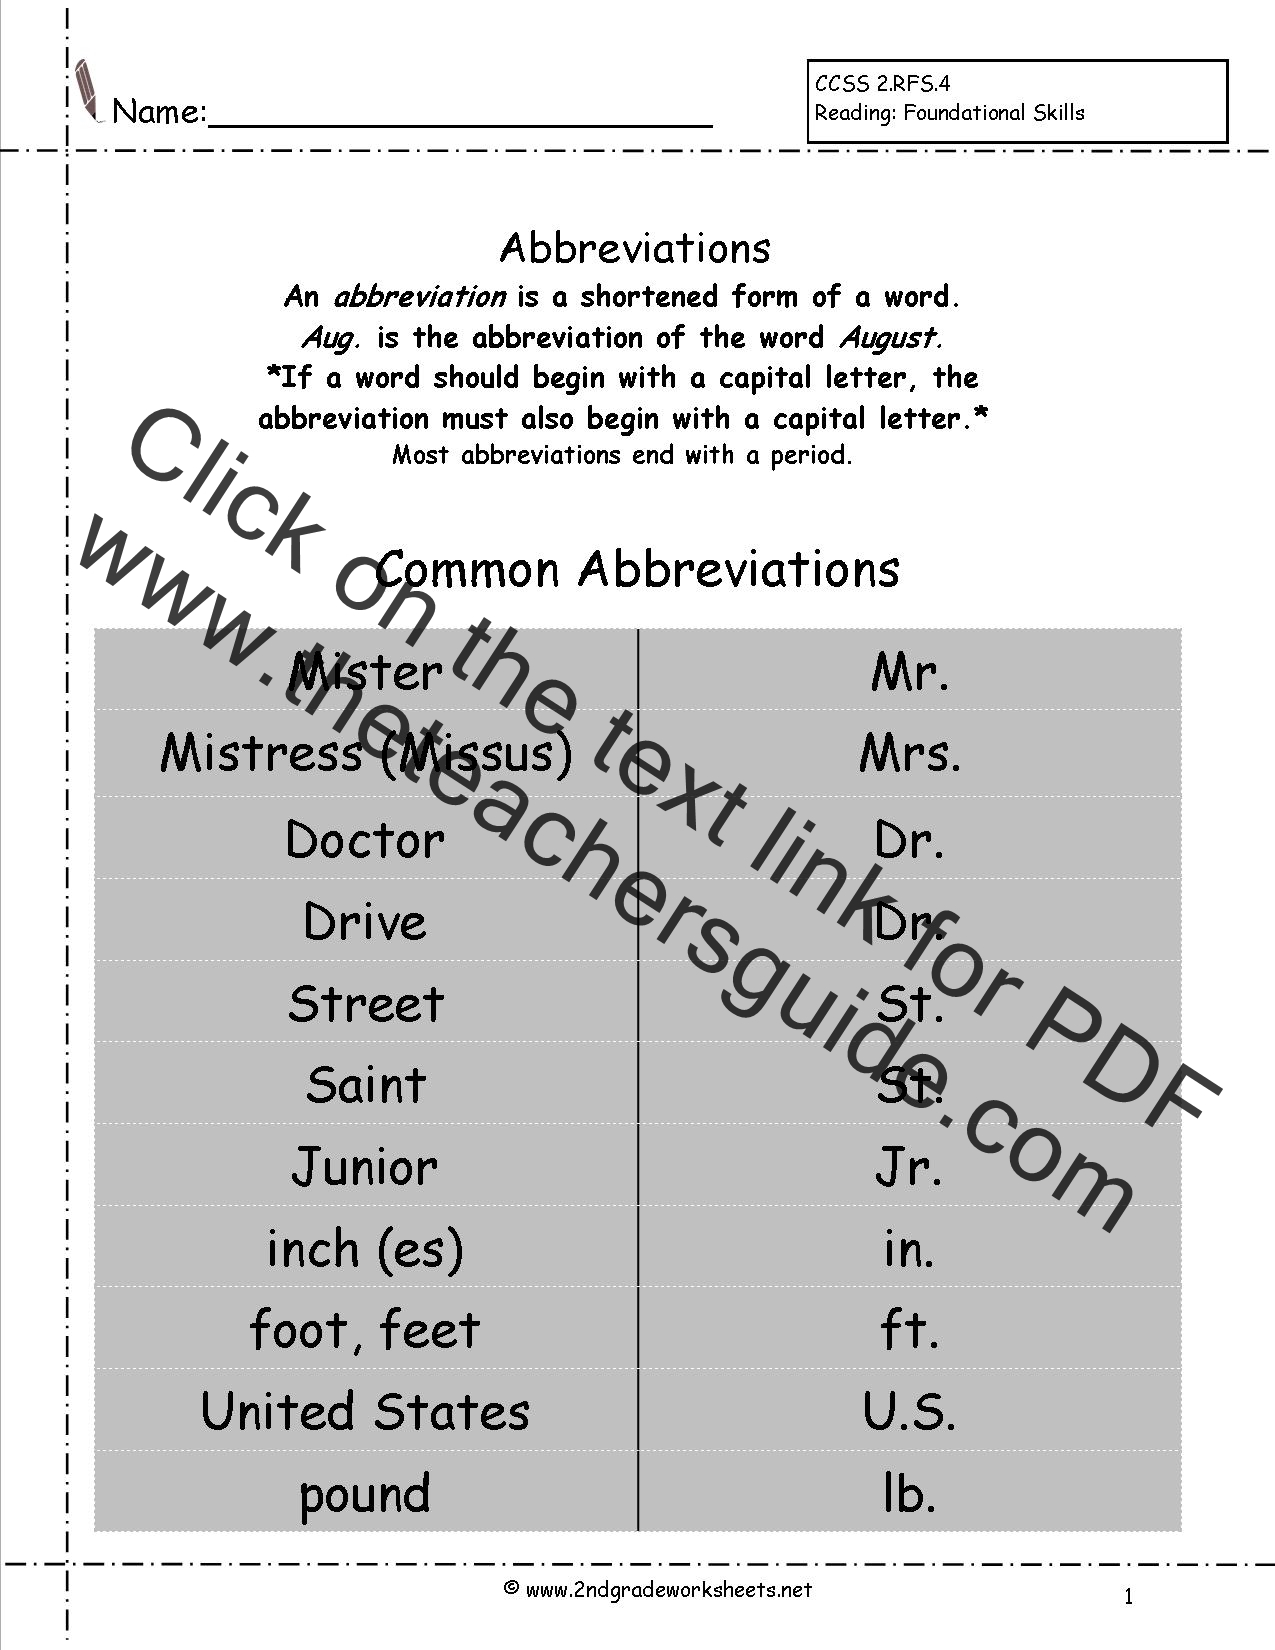 Free LanguageGrammar Worksheets and Printouts – Common Core Grammar Worksheets